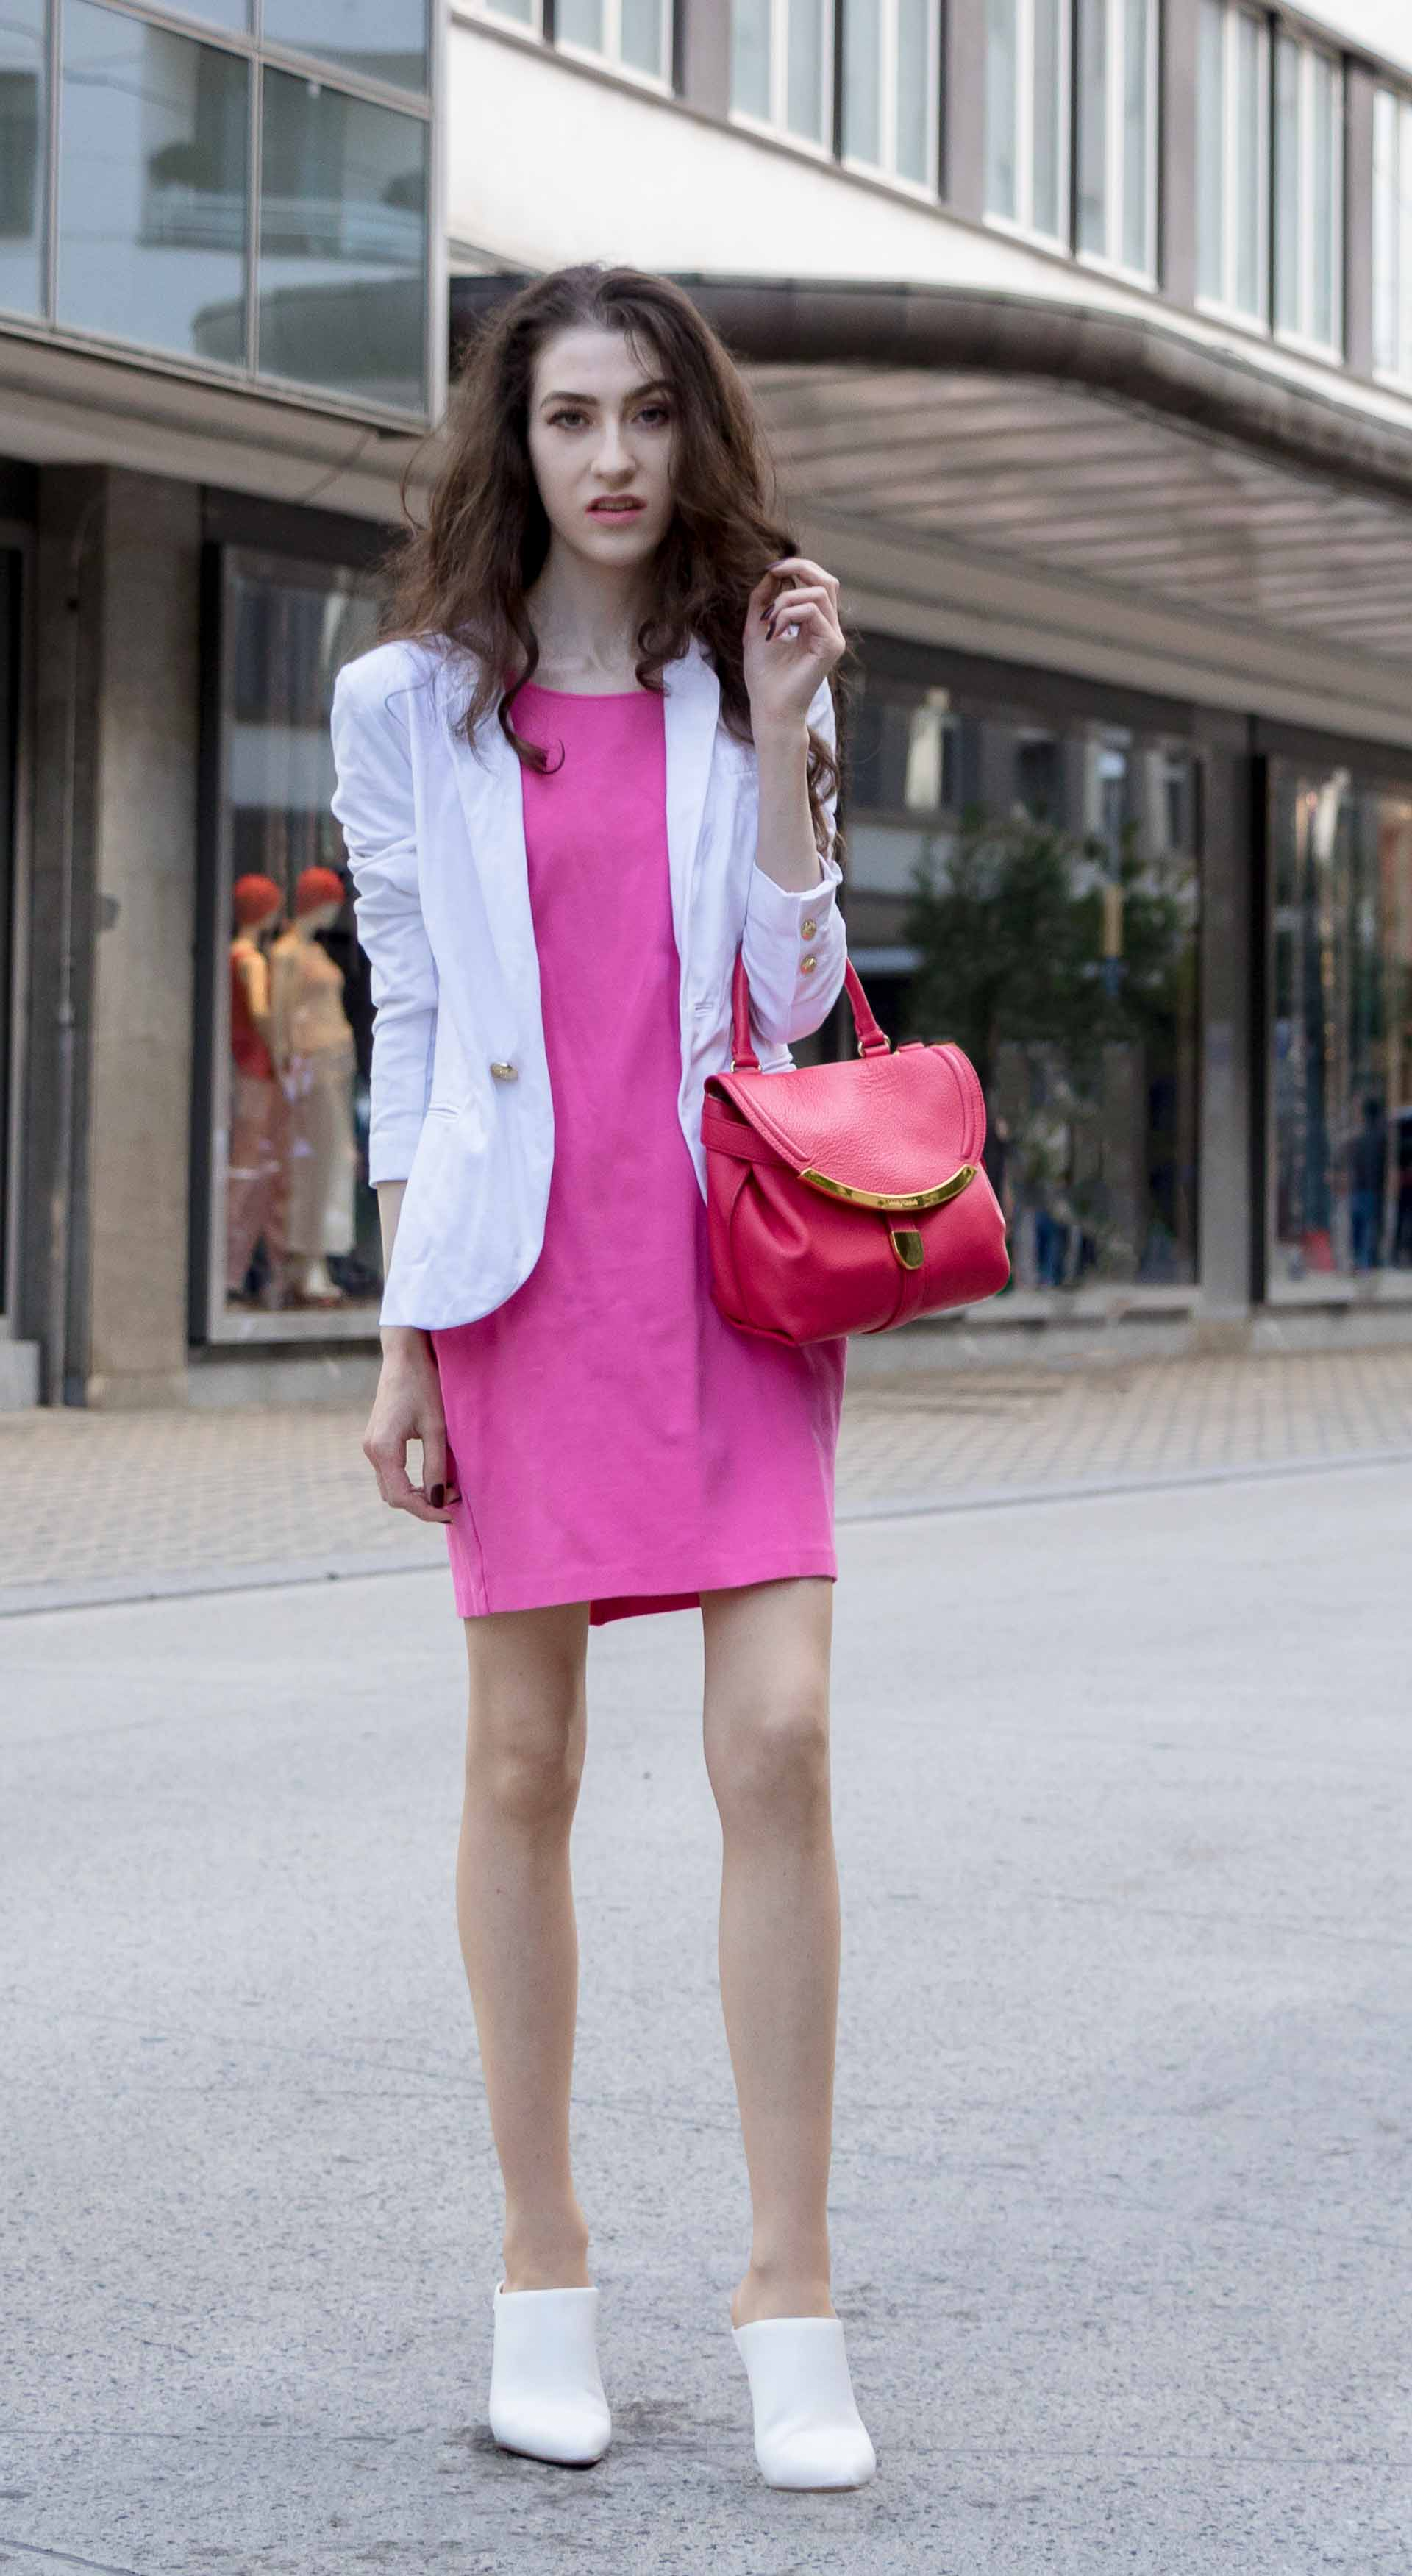 Fashion Blogger Veronika Lipar of Brunette from Wall Street dressed in summer business casual outfit, white high heel close toe mules, pink tailored short dress, white blazer, pink top handle bag rushing to work